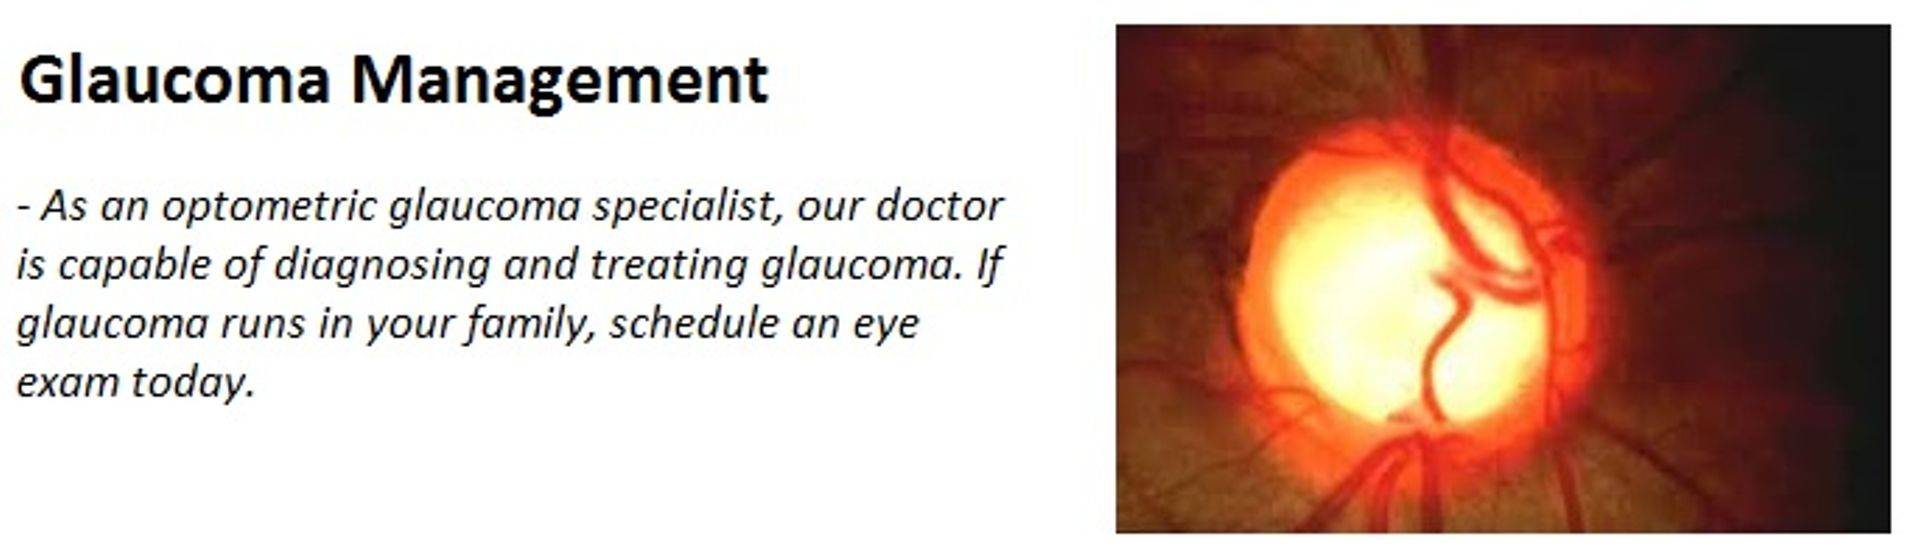 glaucomamanagement1